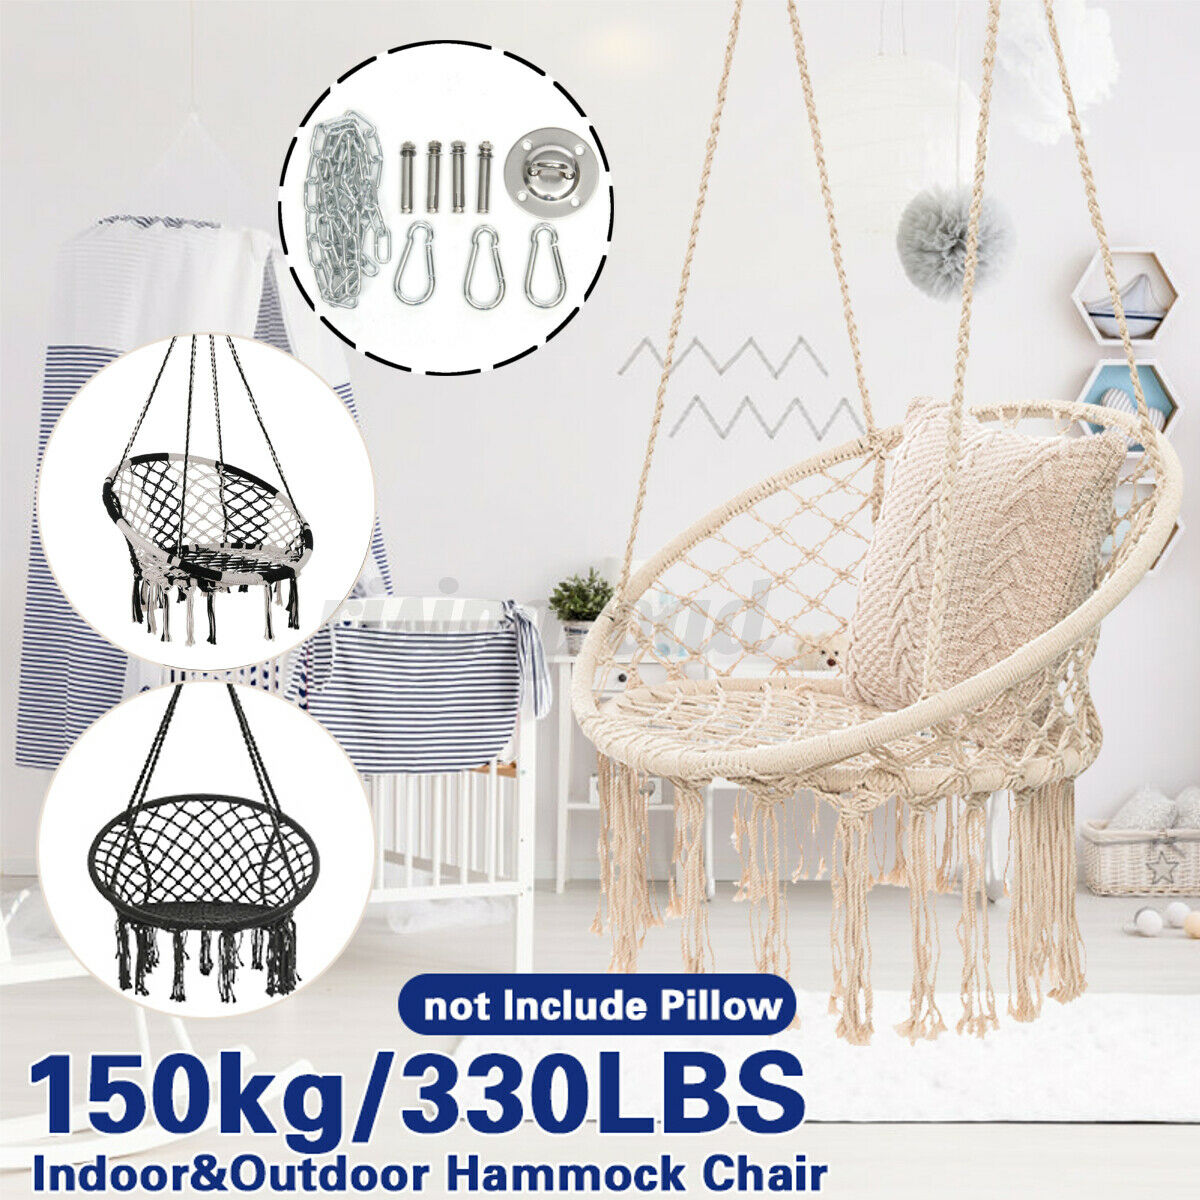 2 Tone Beige Blue Carry Bag Included Indoor Outdoor Use Large Bamboo Bar 330 Lbs Capacity Zupapa Hanging Rope Hammock Chair Swing With Hanging Hardware Kit 360 Swivel Patio Furniture Accessories Patio